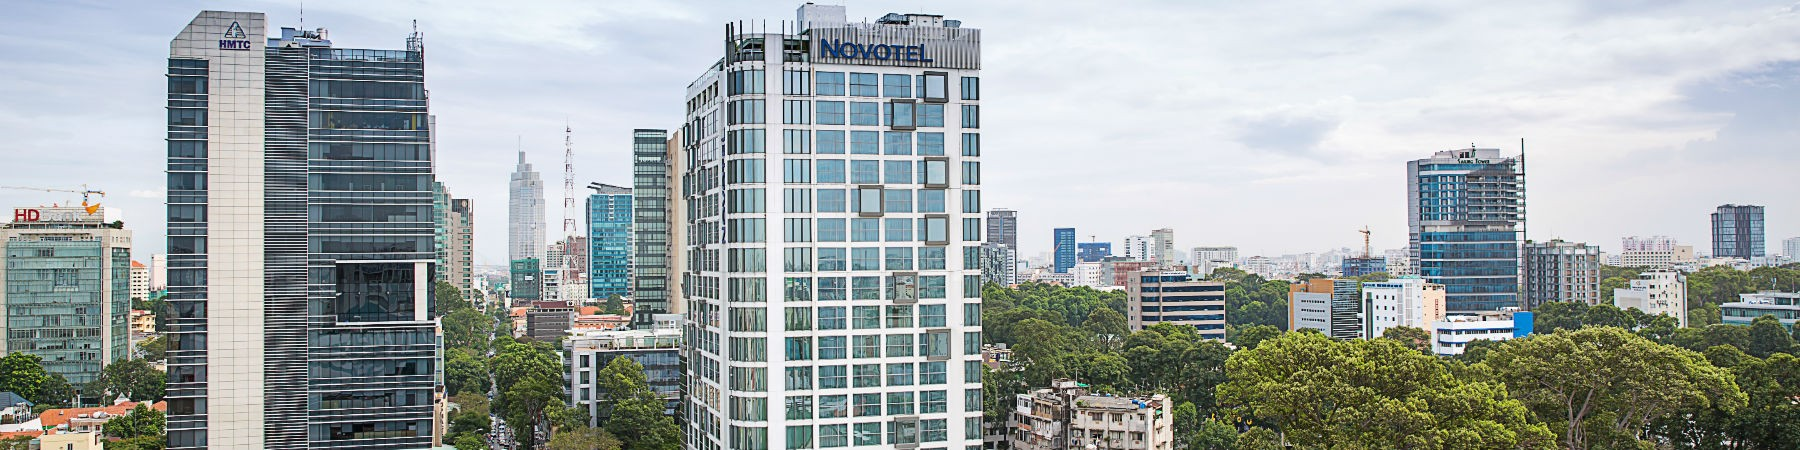 Destination - Novotel Saigon Centre